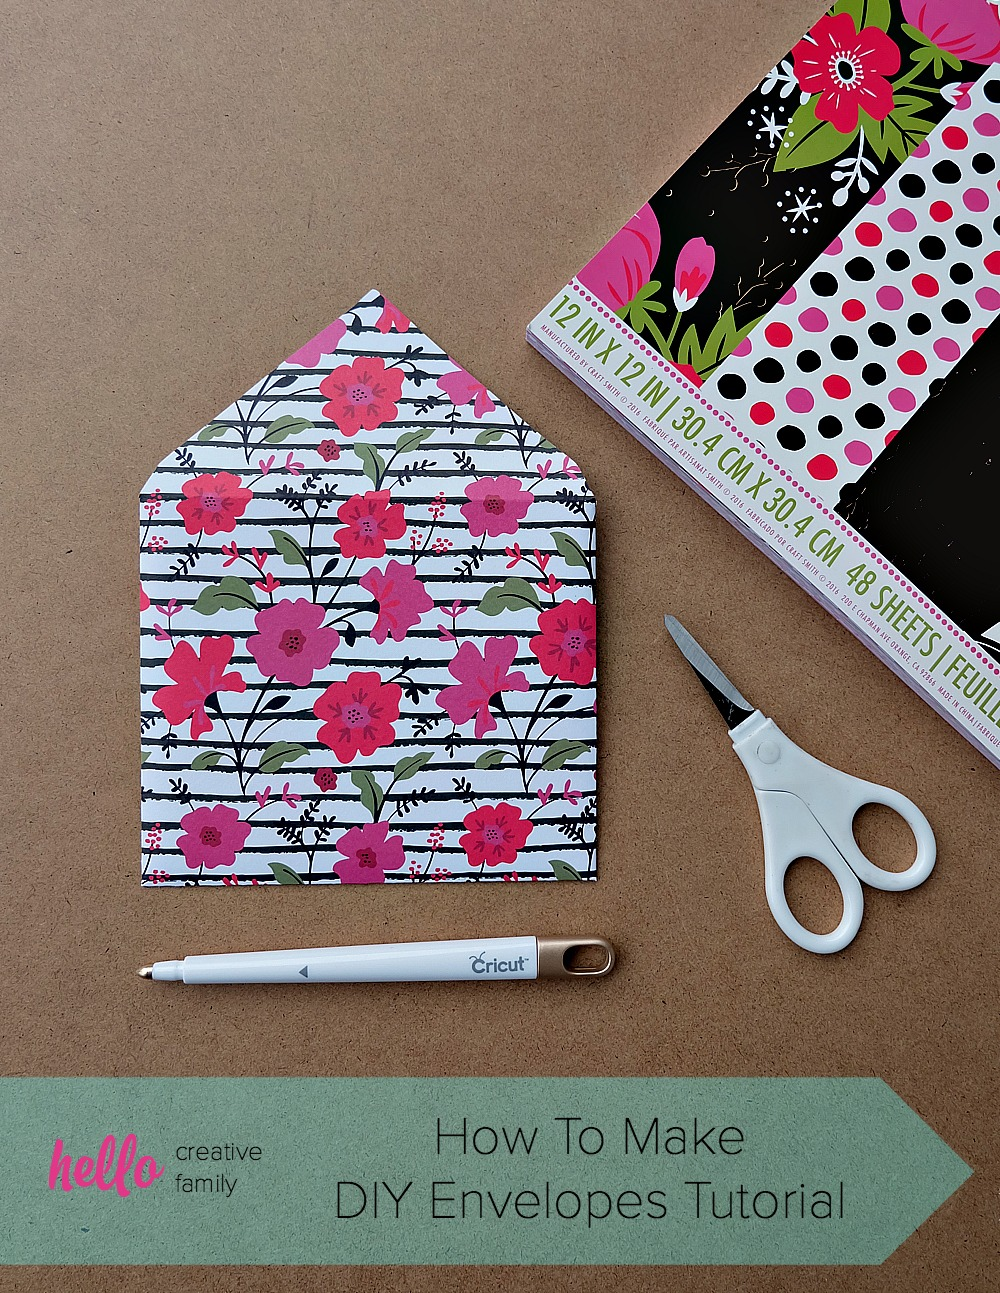 How to make diy envelopes tutorial hello creative family youll want to hang onto old christmas and birthday card envelopes after reading this bookmarktalkfo Images